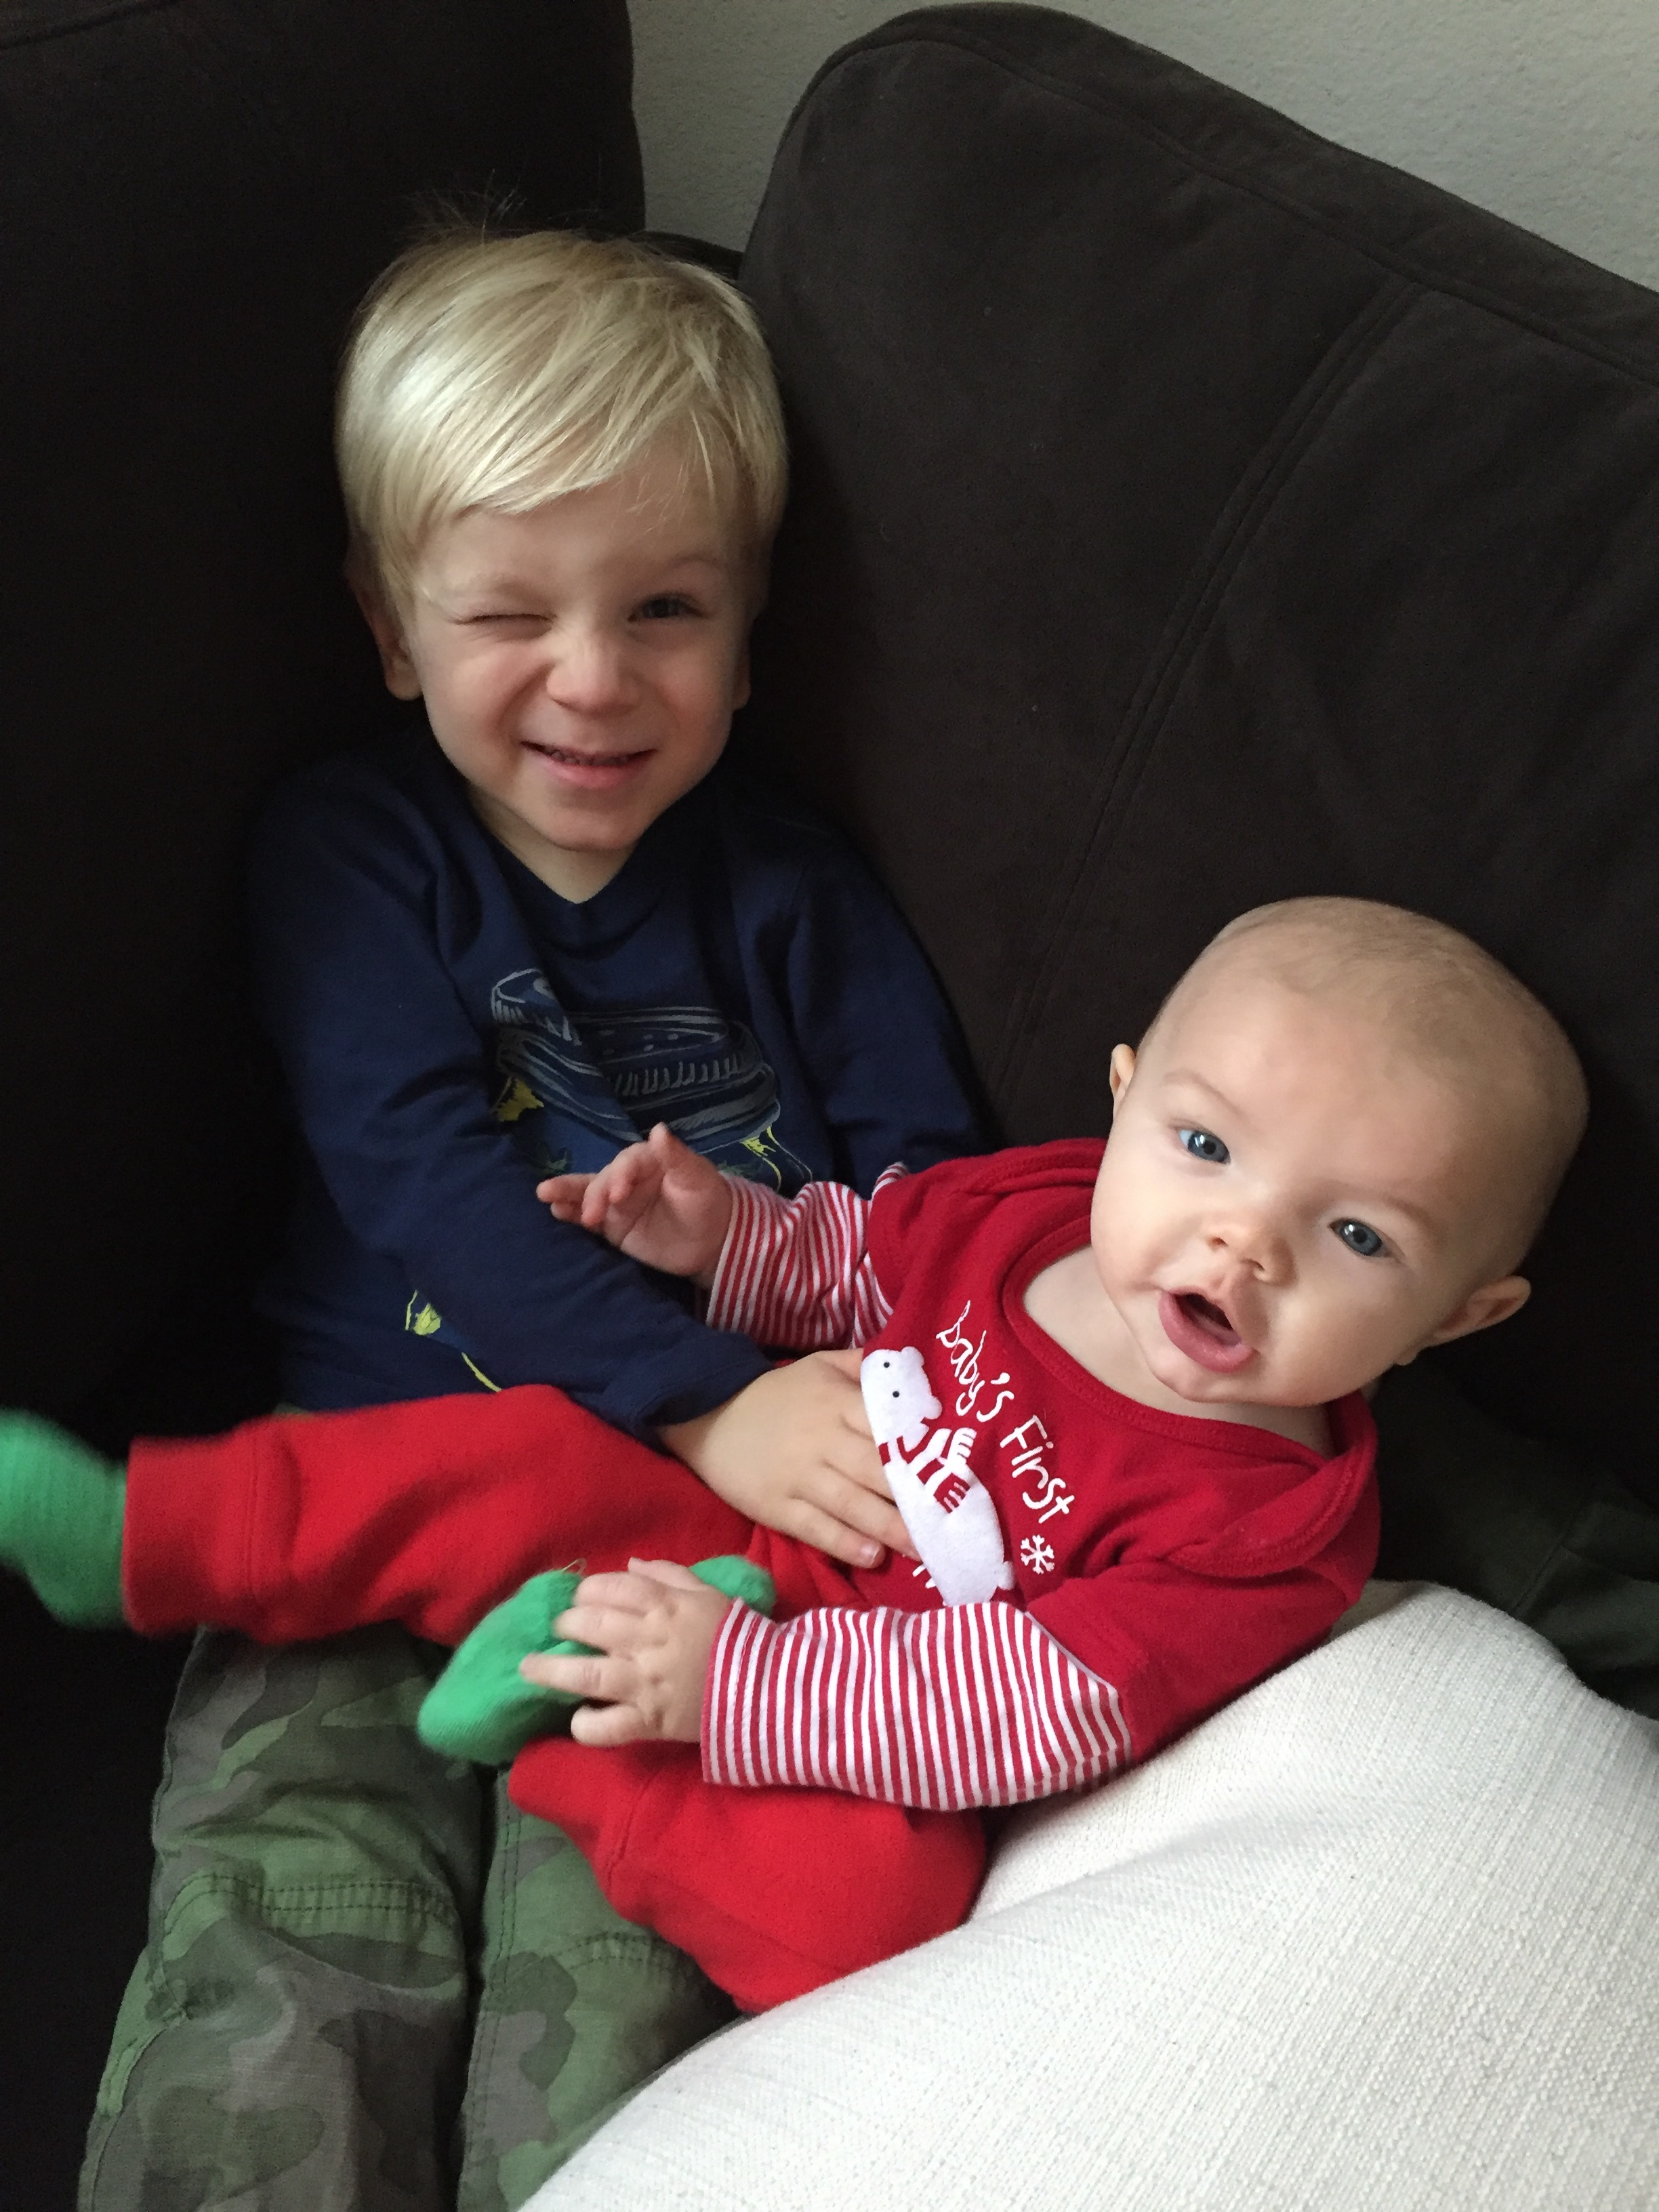 Boden - Holding his baby cousin